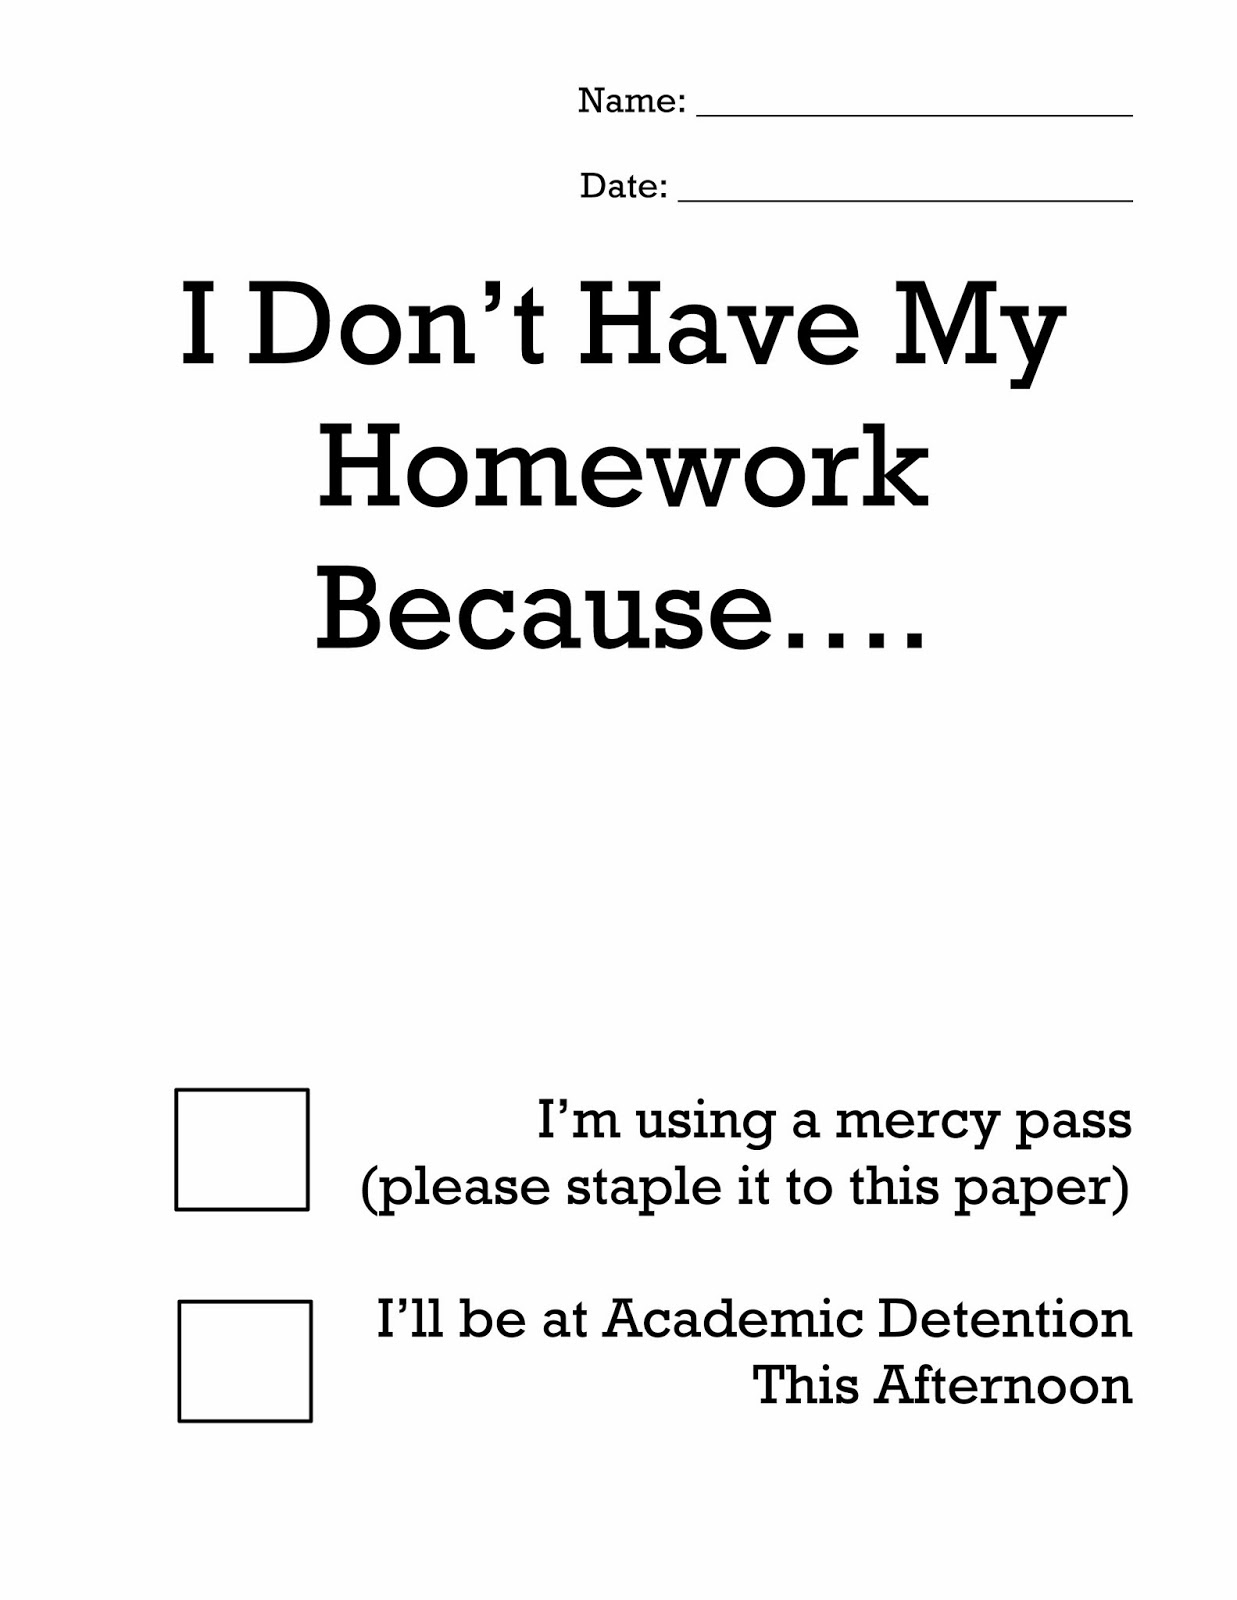 Professional College Homework Help for Students